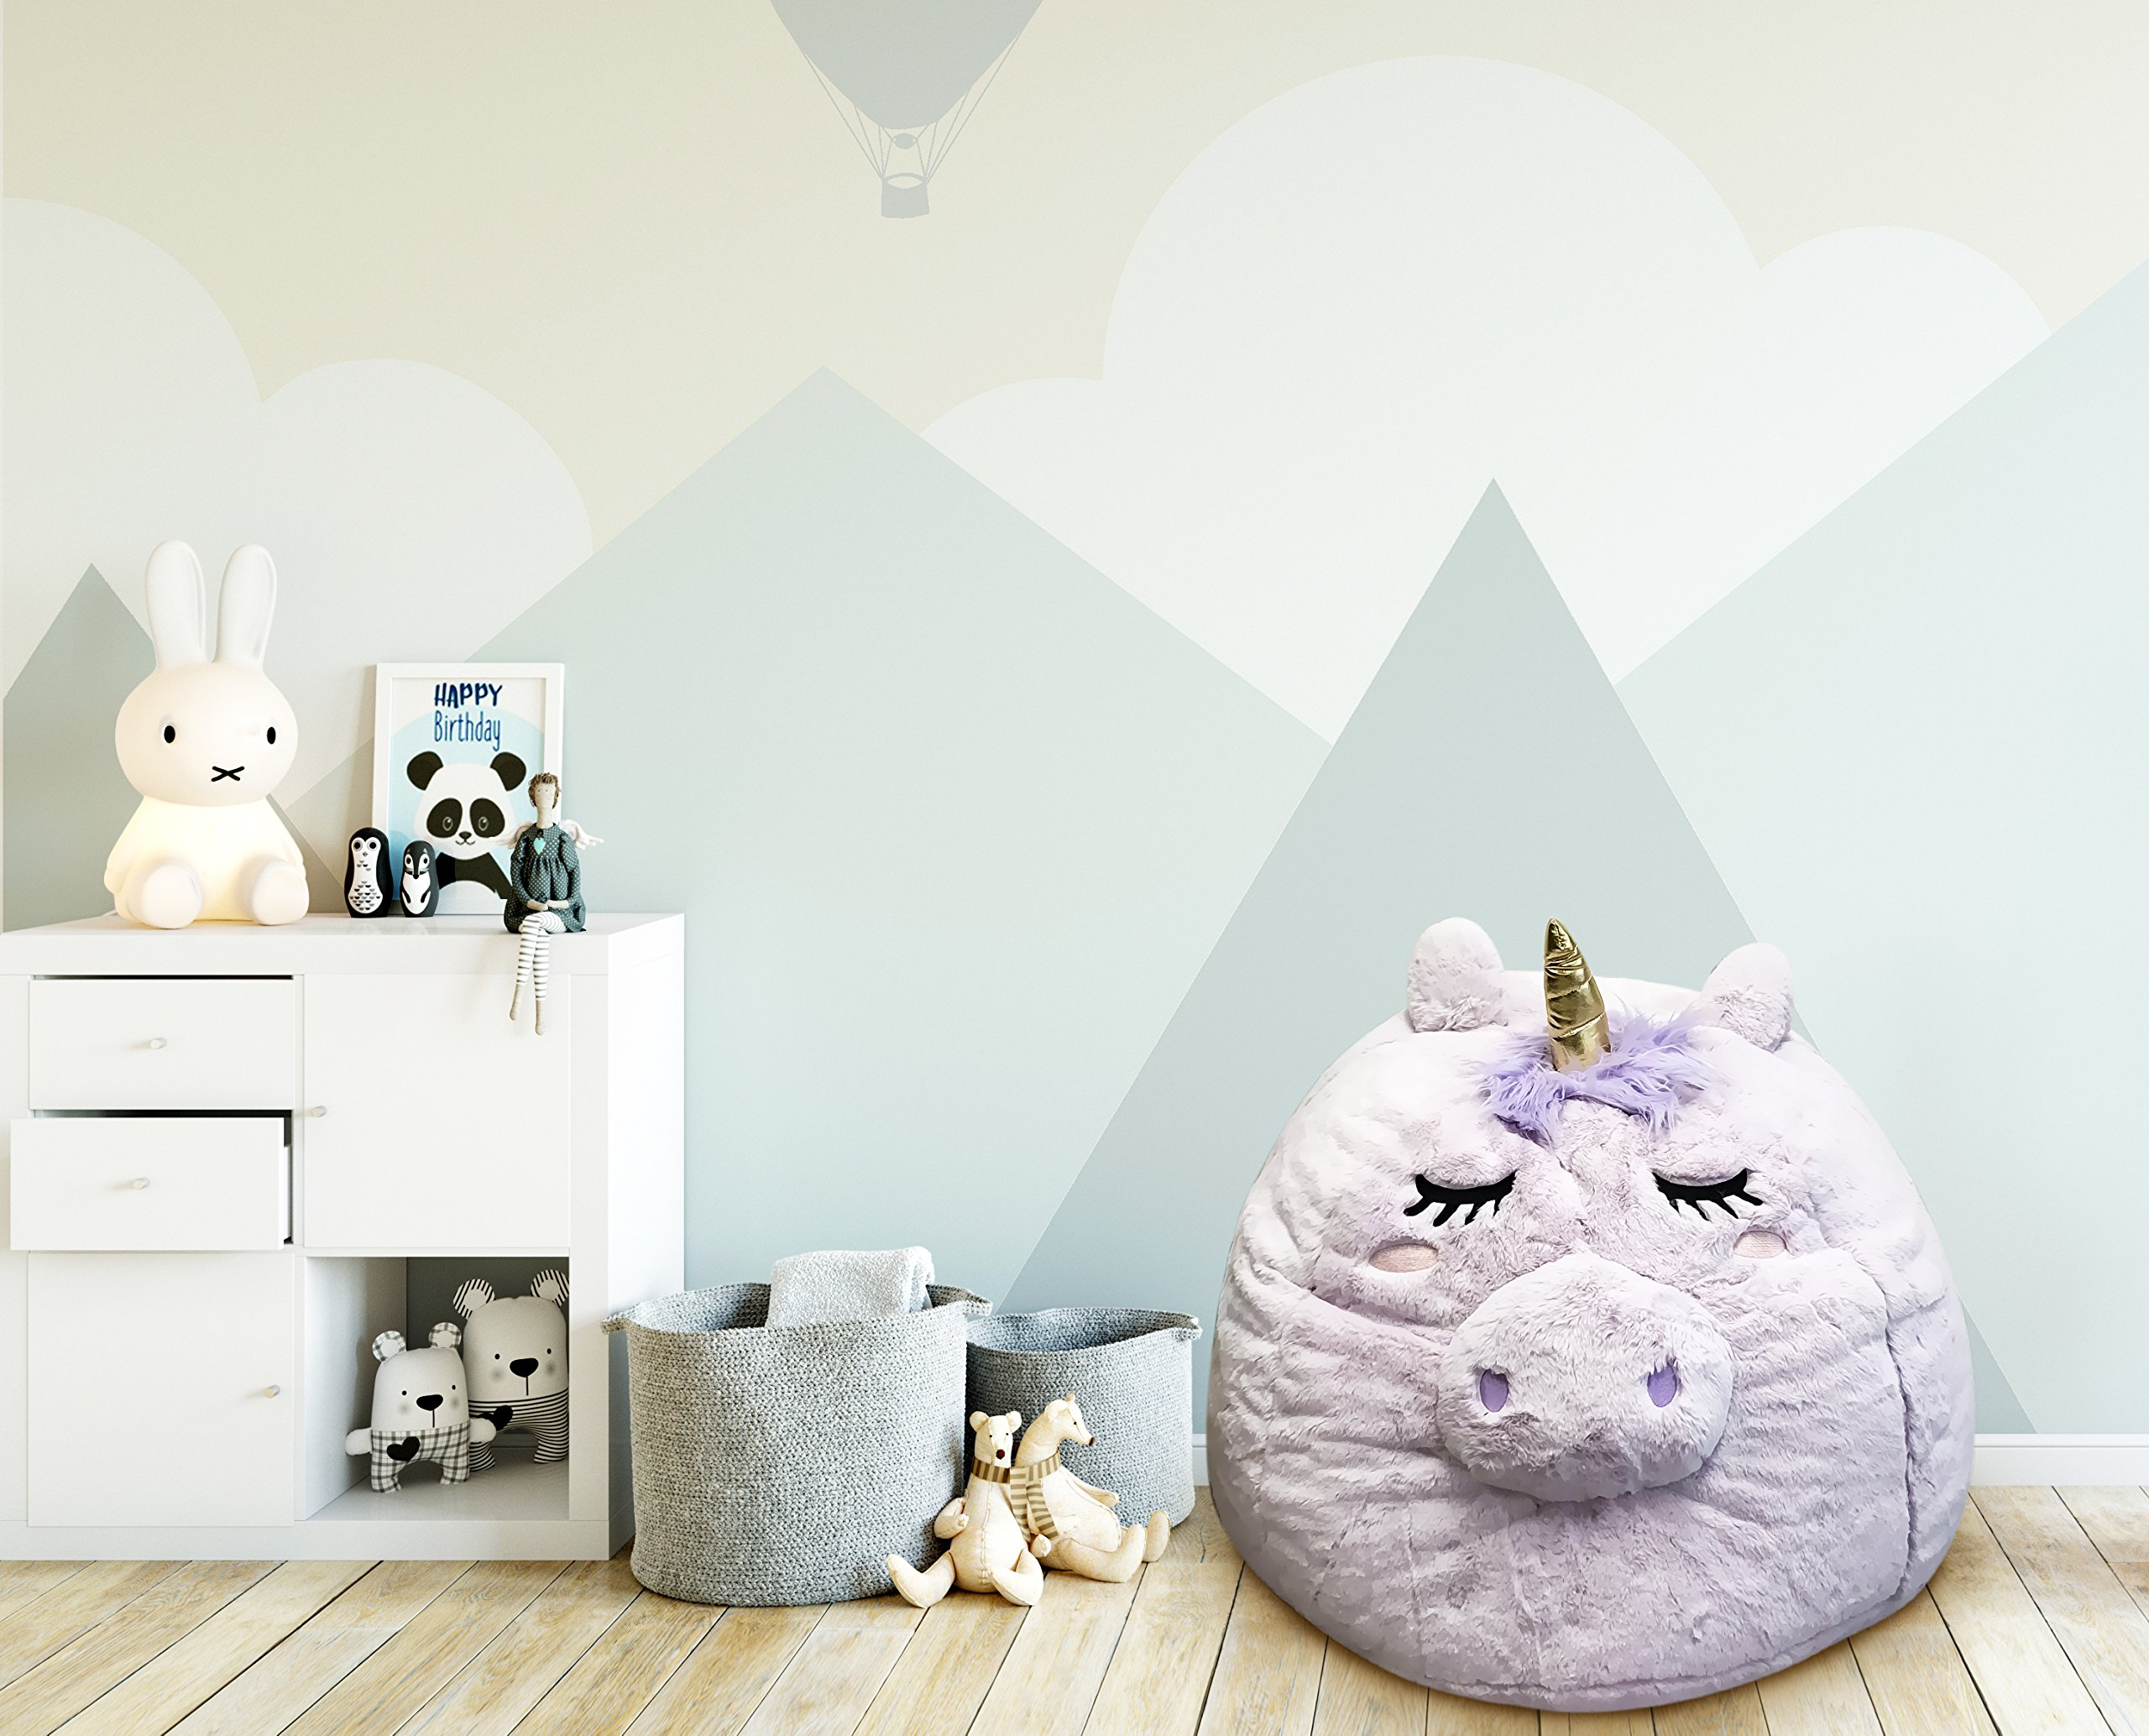 Beanbag For Kids: Soft And Comfortable Stuffed Bean Bag Chair For The Nursery, Cute Animal Design For Boys And Girls, Lux Plush Fabric, For Children Of All Ages 30'' x 30'' x 20'' (Unicorn) by Great Home Discounts